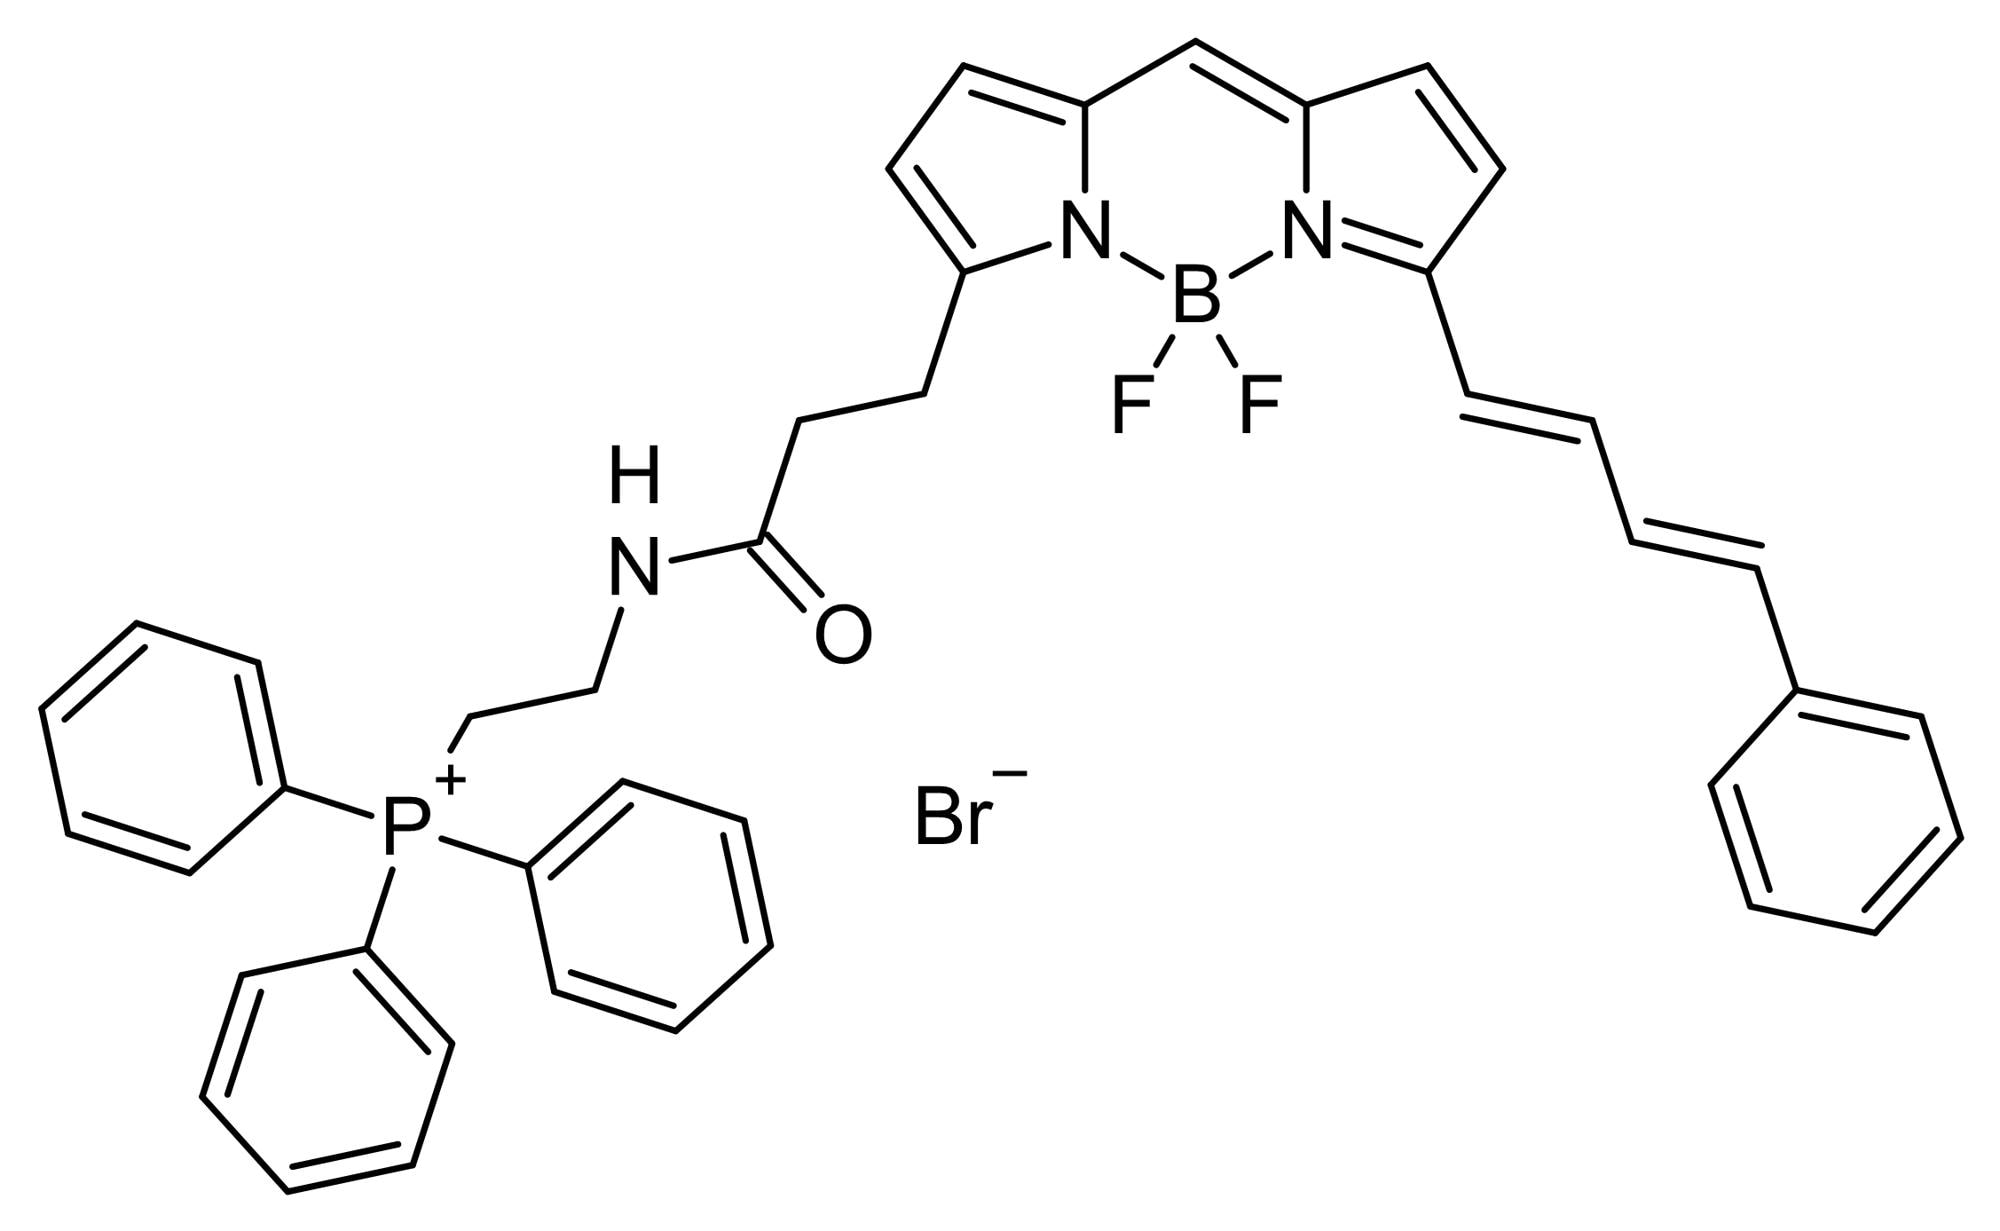 Chemical Structure - MitoPerOx, fluorescent mitochondria-targeted lipid peroxidation probe (ab146820)